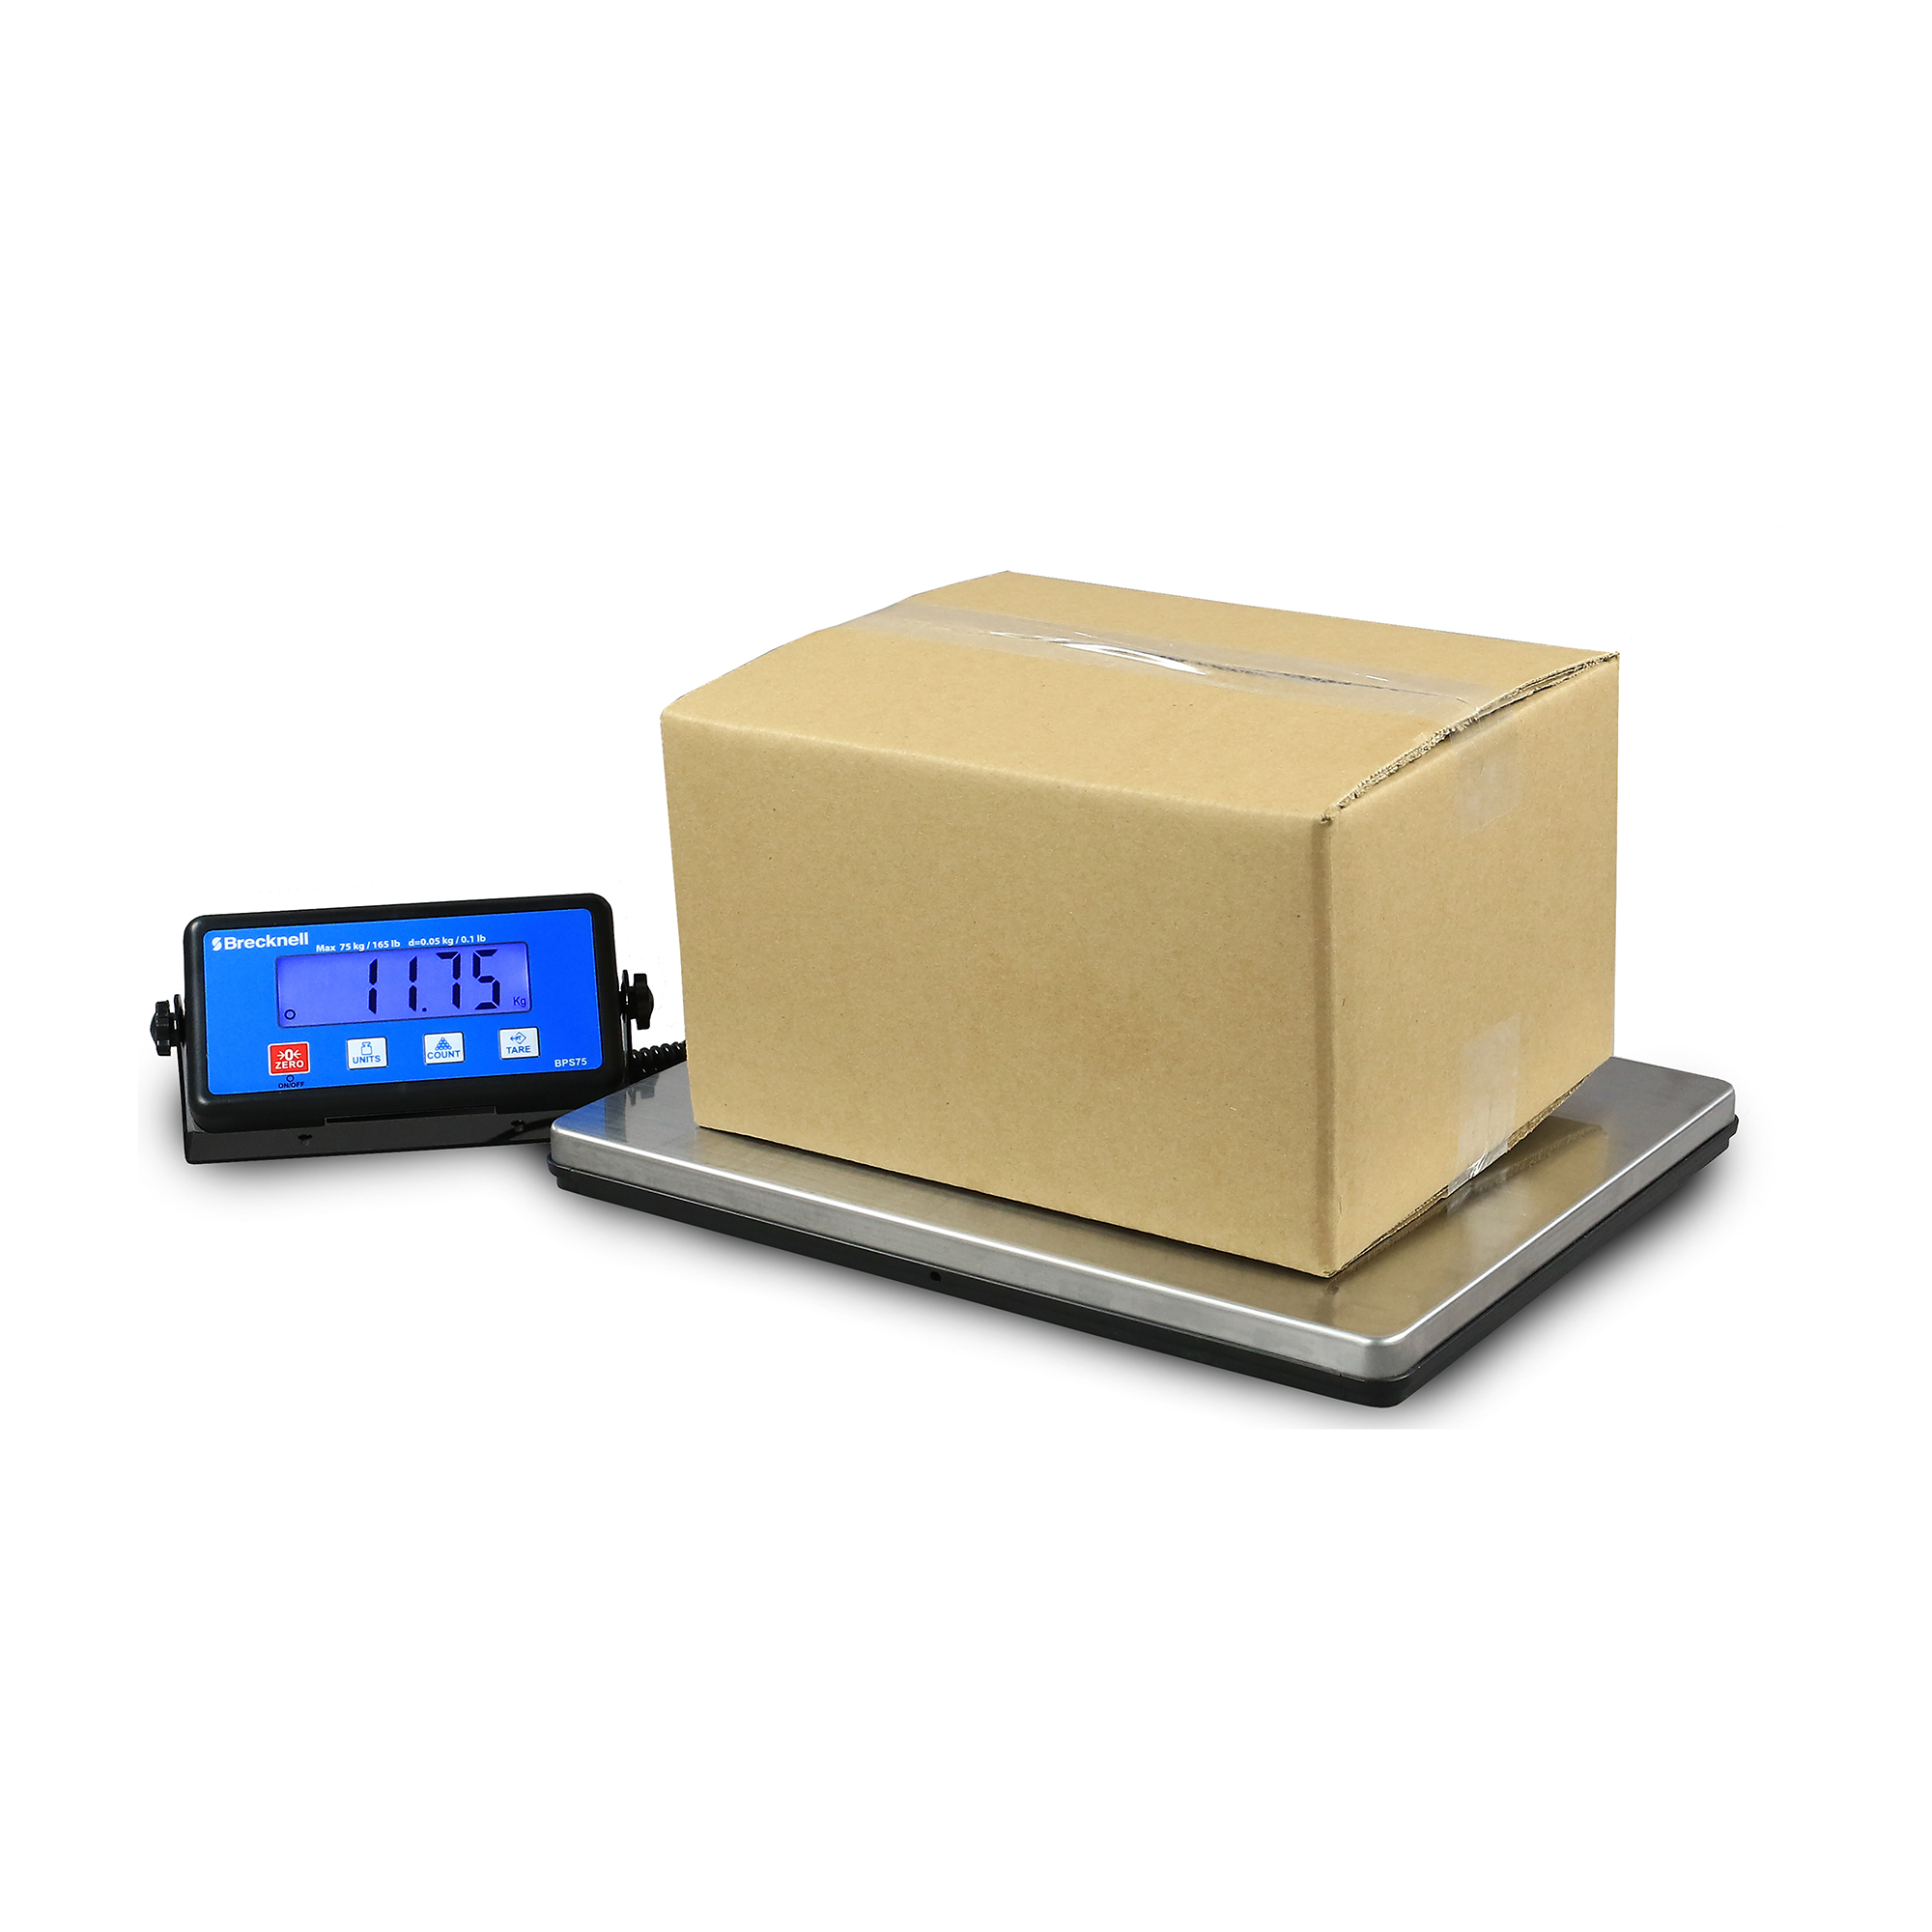 Image for BPS Series Parcel & Shipping Scales 75kg x 0.05kg Ref 816965007110